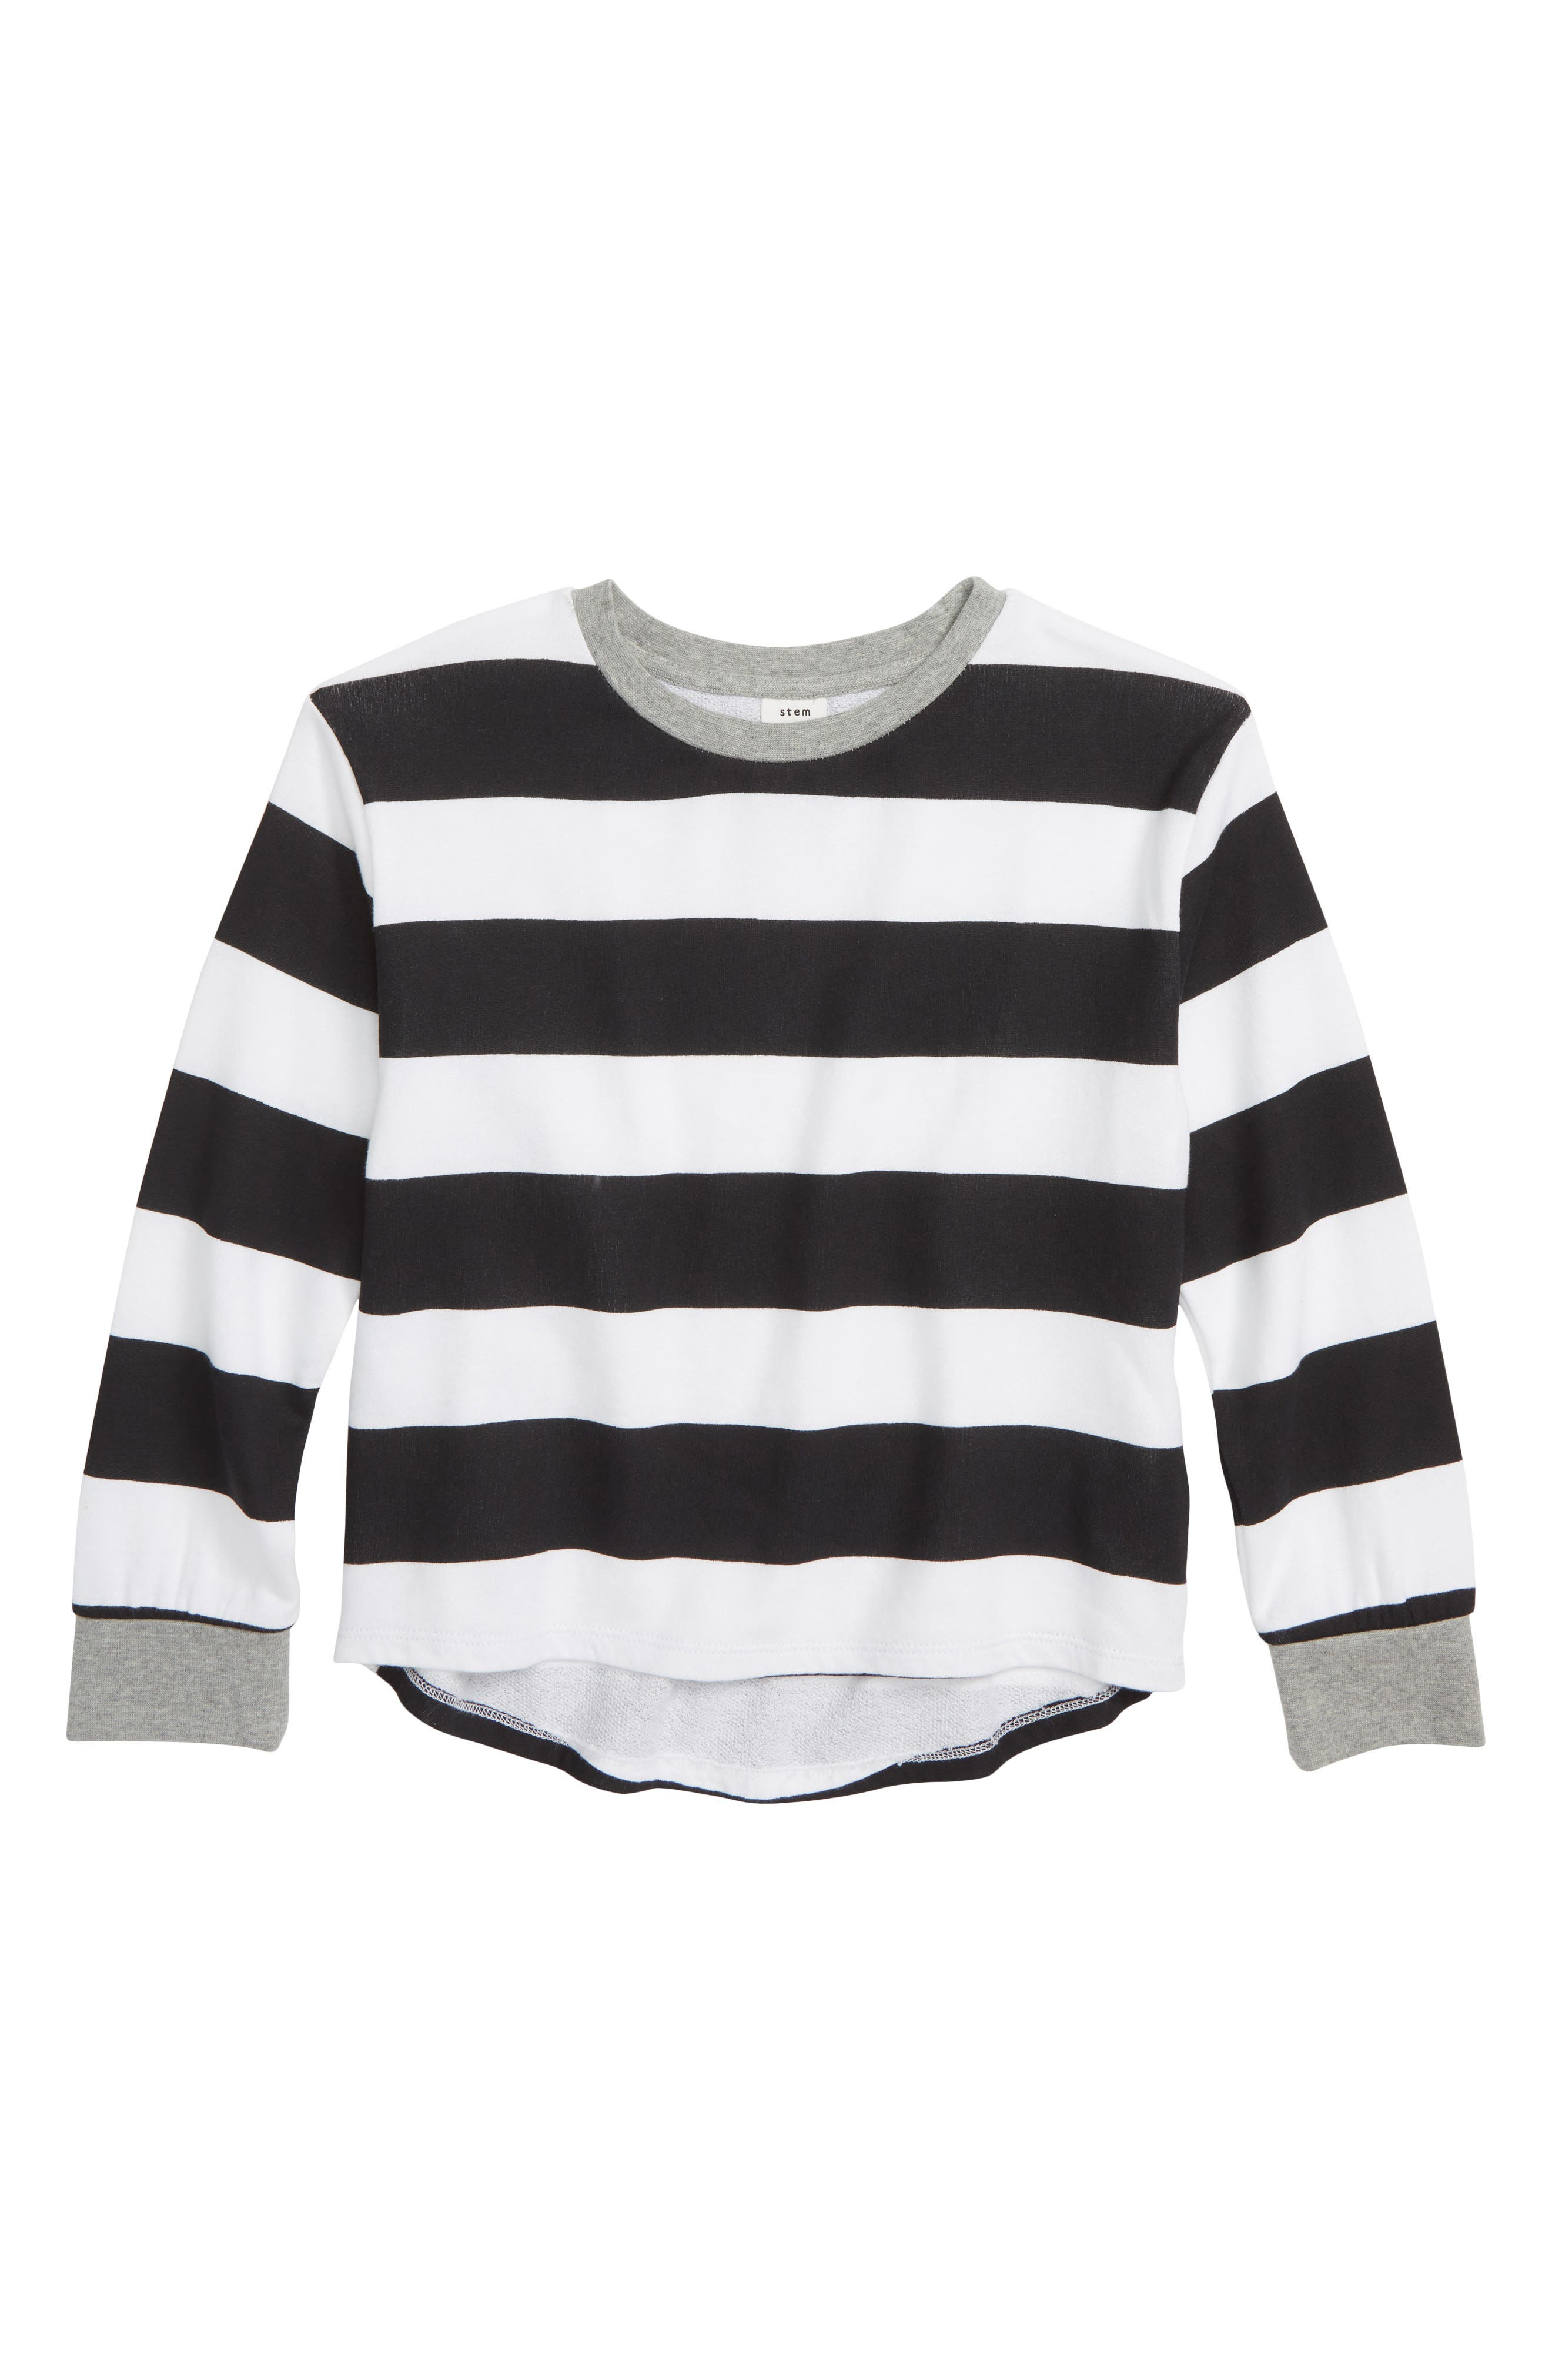 High/Low Sweatshirt,                         Main,                         color, BLACK- WHITE STRIPE